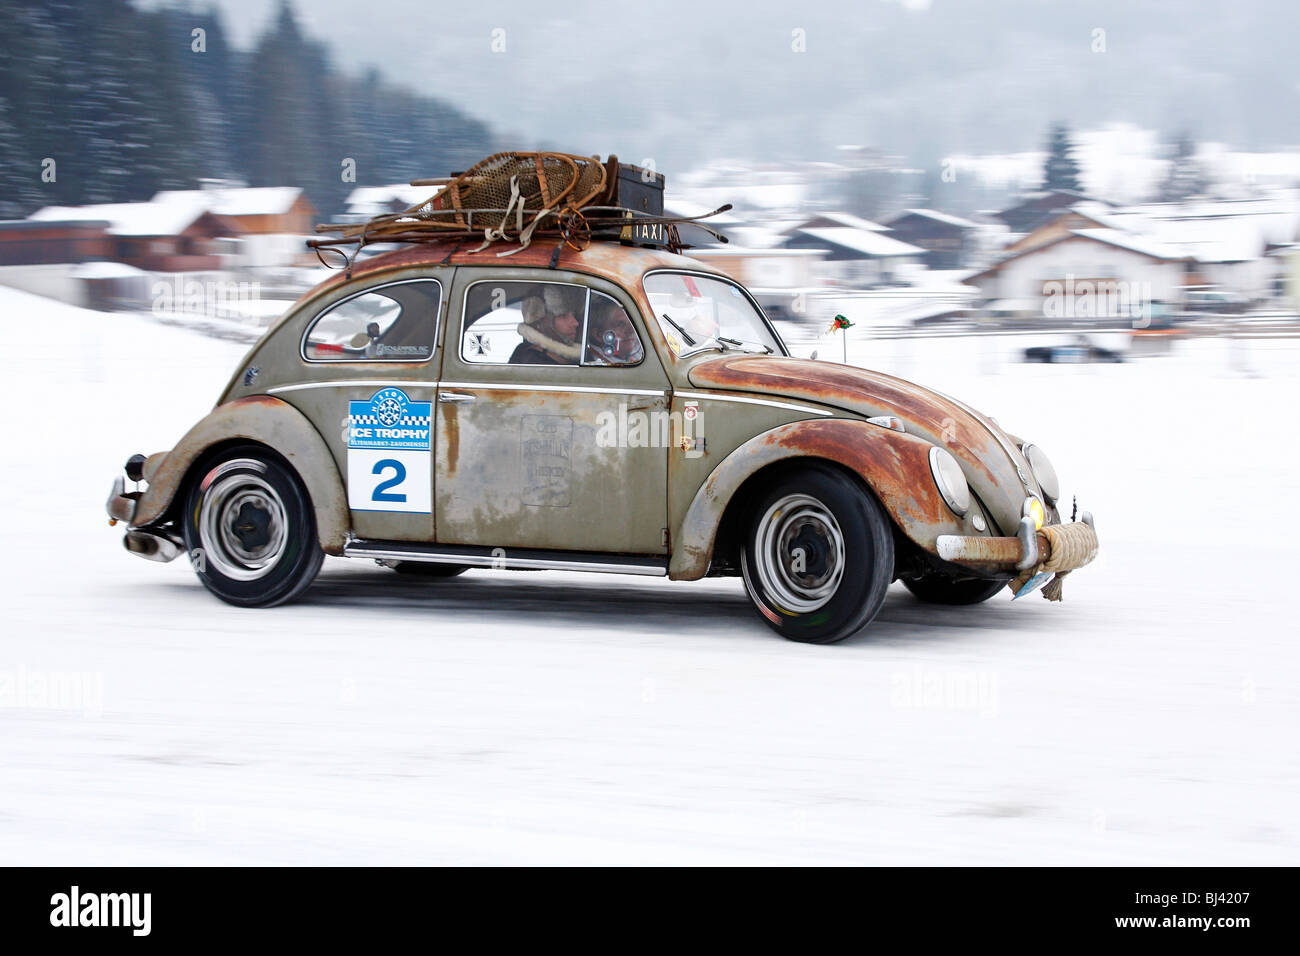 Rusty Vw Beetle Built In Classic Cars Winter Race Historic